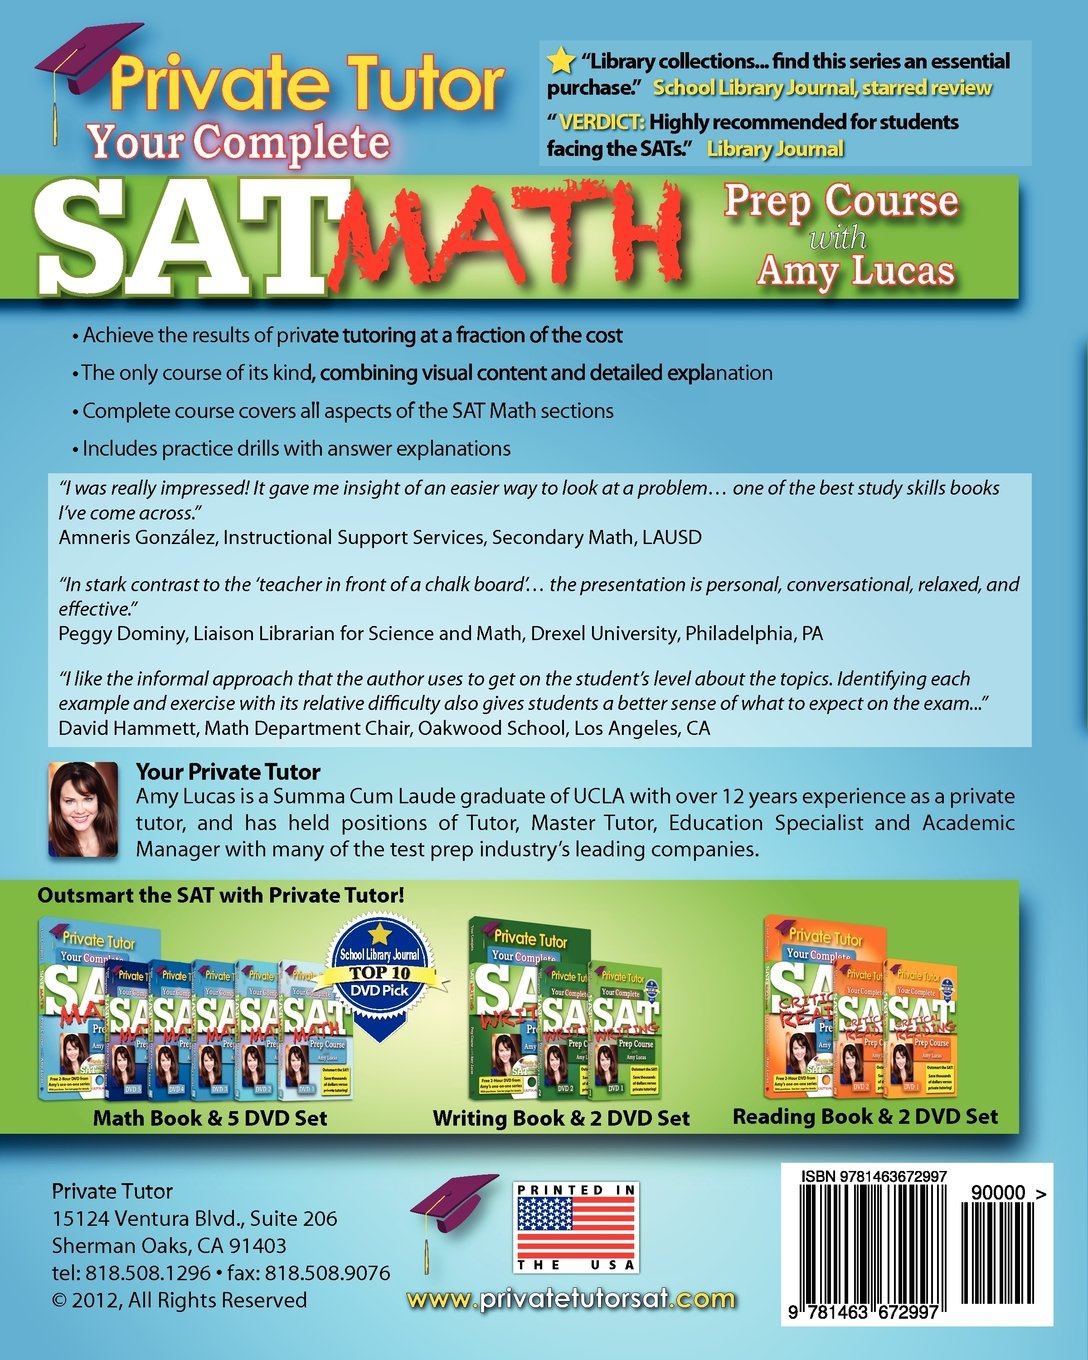 Private Tutor - Your Complete SAT Math Prep Course (Your Complete ...